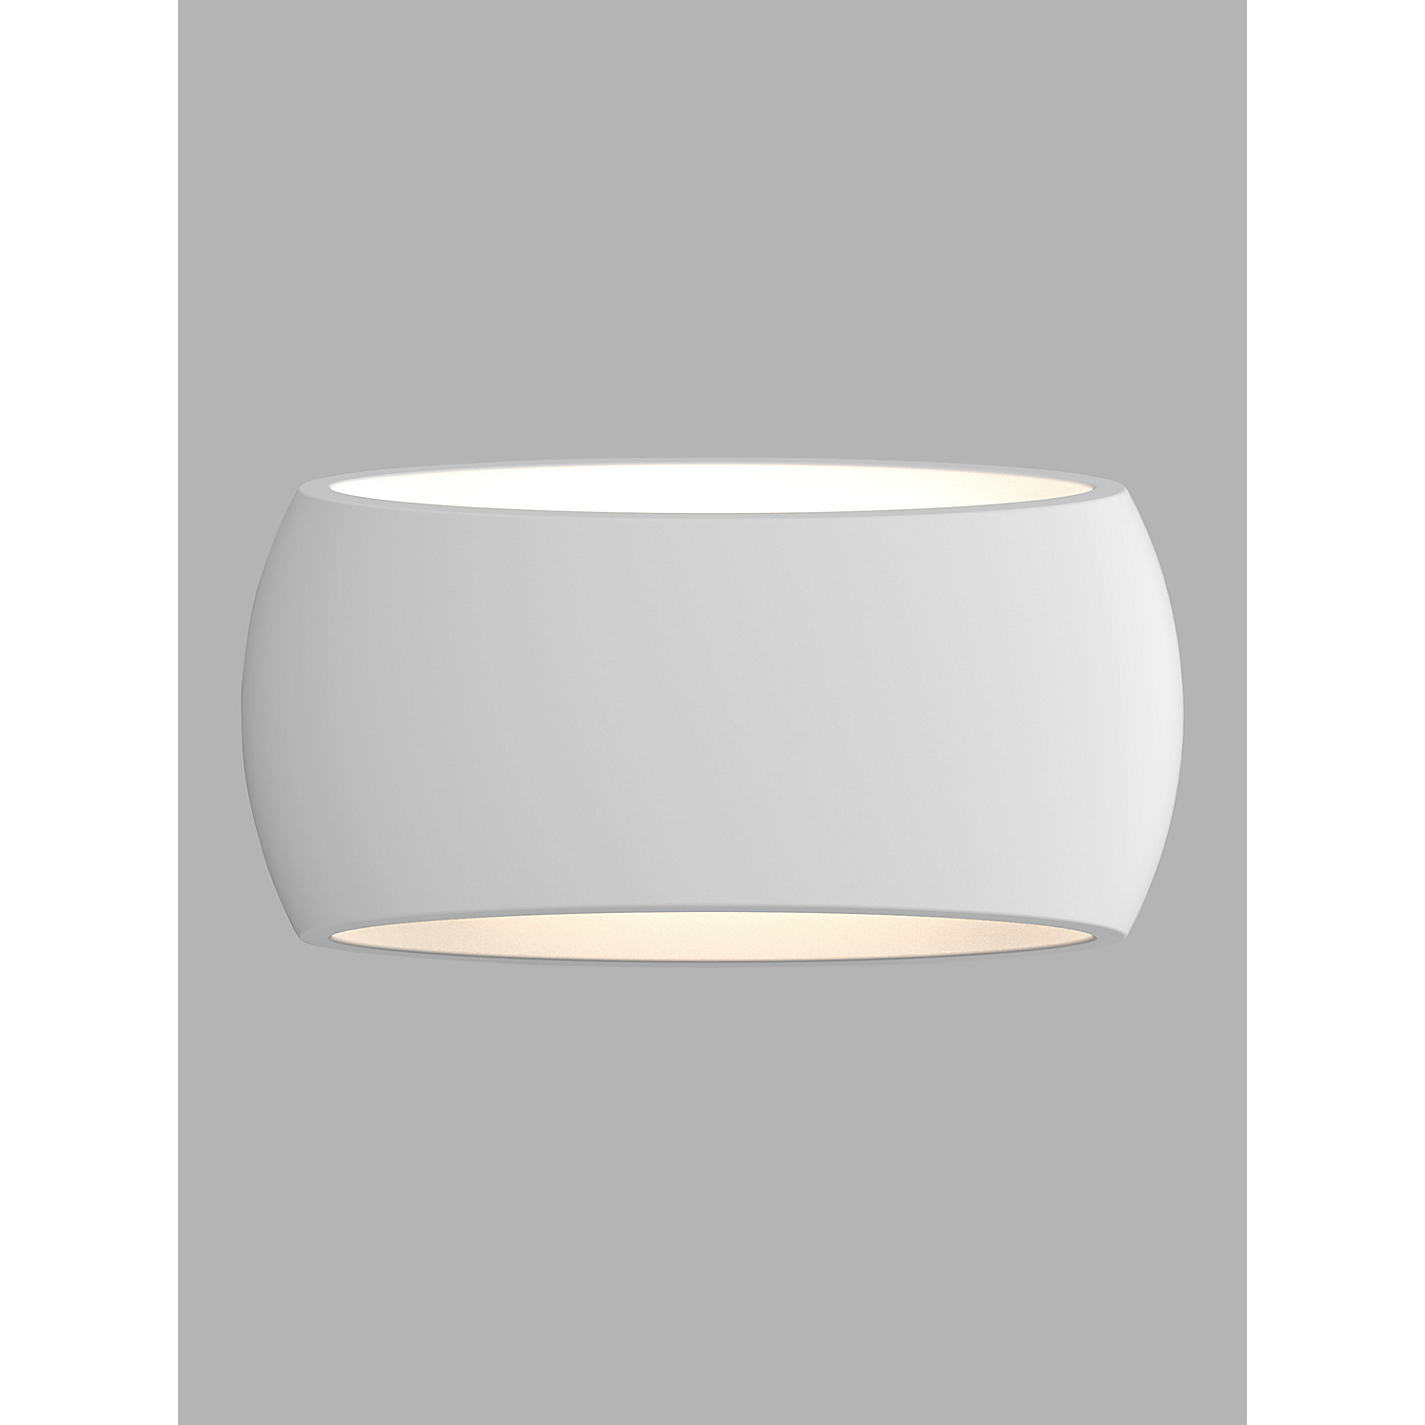 Bathroom Wall Lights John Lewis bathroom | wall lighting | john lewis